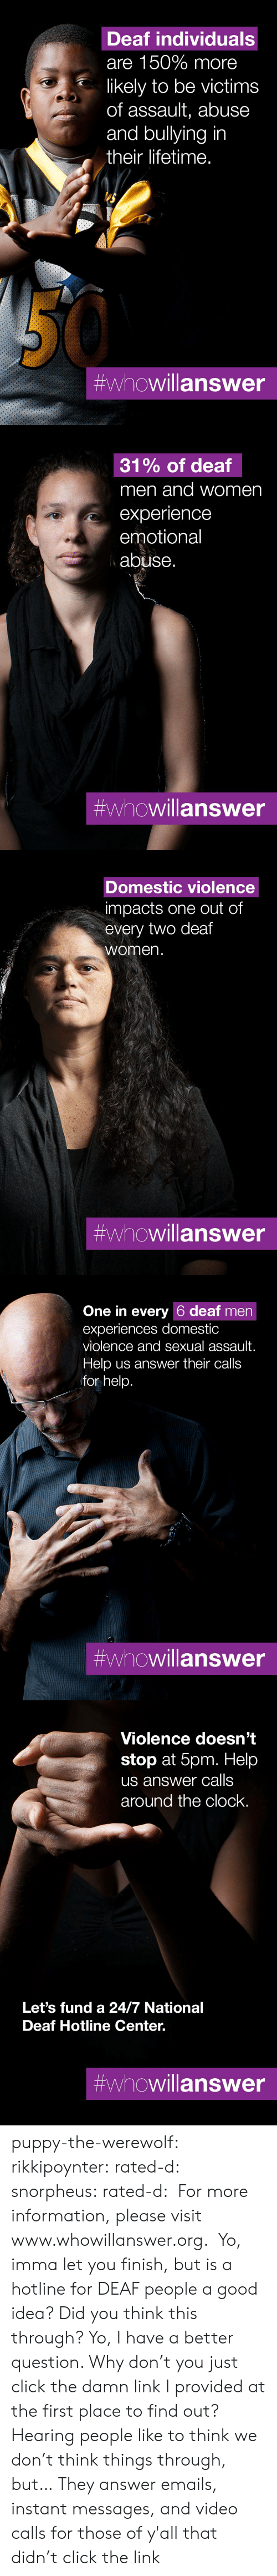 bullying: Deaf individuals  are 150% more  likely to be victims  of assault, abuse  and bullying in  their lifetime.  #whowillanswer   31% of deaf  men and women  experience  emotional  abuse.  #whowillanswer   Domestic violence  impacts one out of  every two deaf  women.  #whowillanswer   One in every 6 deaf men  experiences domestic  violence and sexual assault.  Help us answer their calls  for help.  #whowillanswer   Violence doesn't  stop at 5pm. Help  us answer calls  around the clock.  Let's fund a 24/7 National  Deaf Hotline Center.  puppy-the-werewolf: rikkipoynter:  rated-d:  snorpheus:  rated-d:   For more information, please visit www.whowillanswer.org.   Yo, imma let you finish, but is a hotline for DEAF people a good idea? Did you think this through?  Yo, I have a better question. Why don't you just click the damn link I provided at the first place to find out?     Hearing people like to think we don't think things through, but…   They answer emails, instant messages, and video calls for those of y'all that didn't click the link